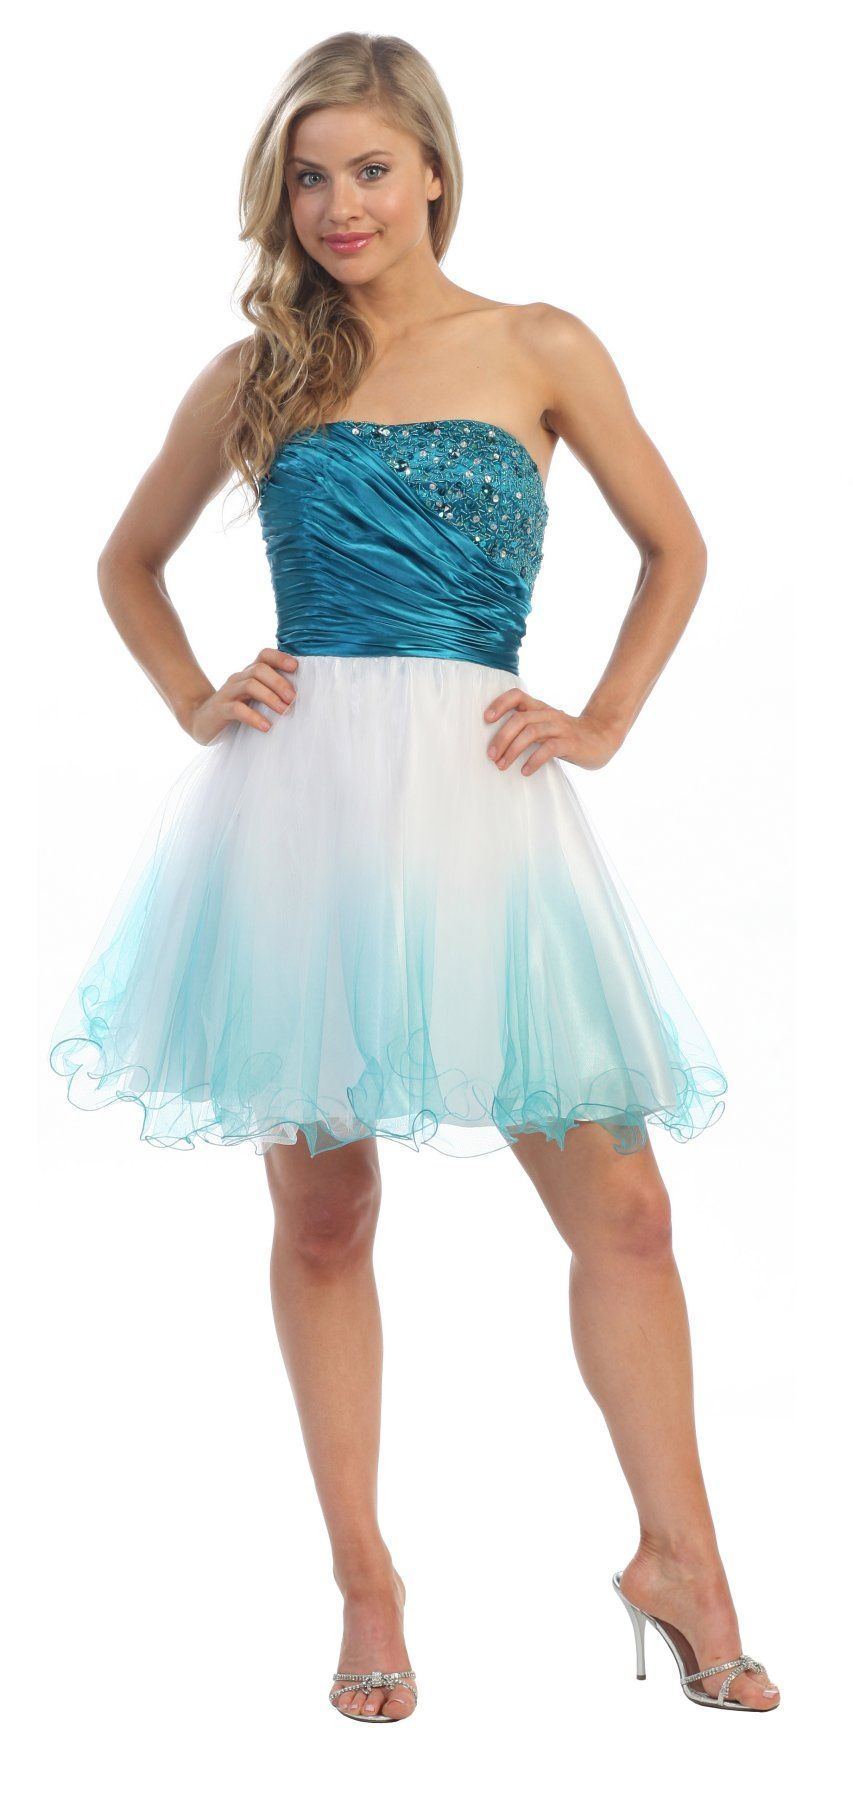 Short Ombre Teal Tulle Dress Strapless Poofy Skirt Beading Satin ...